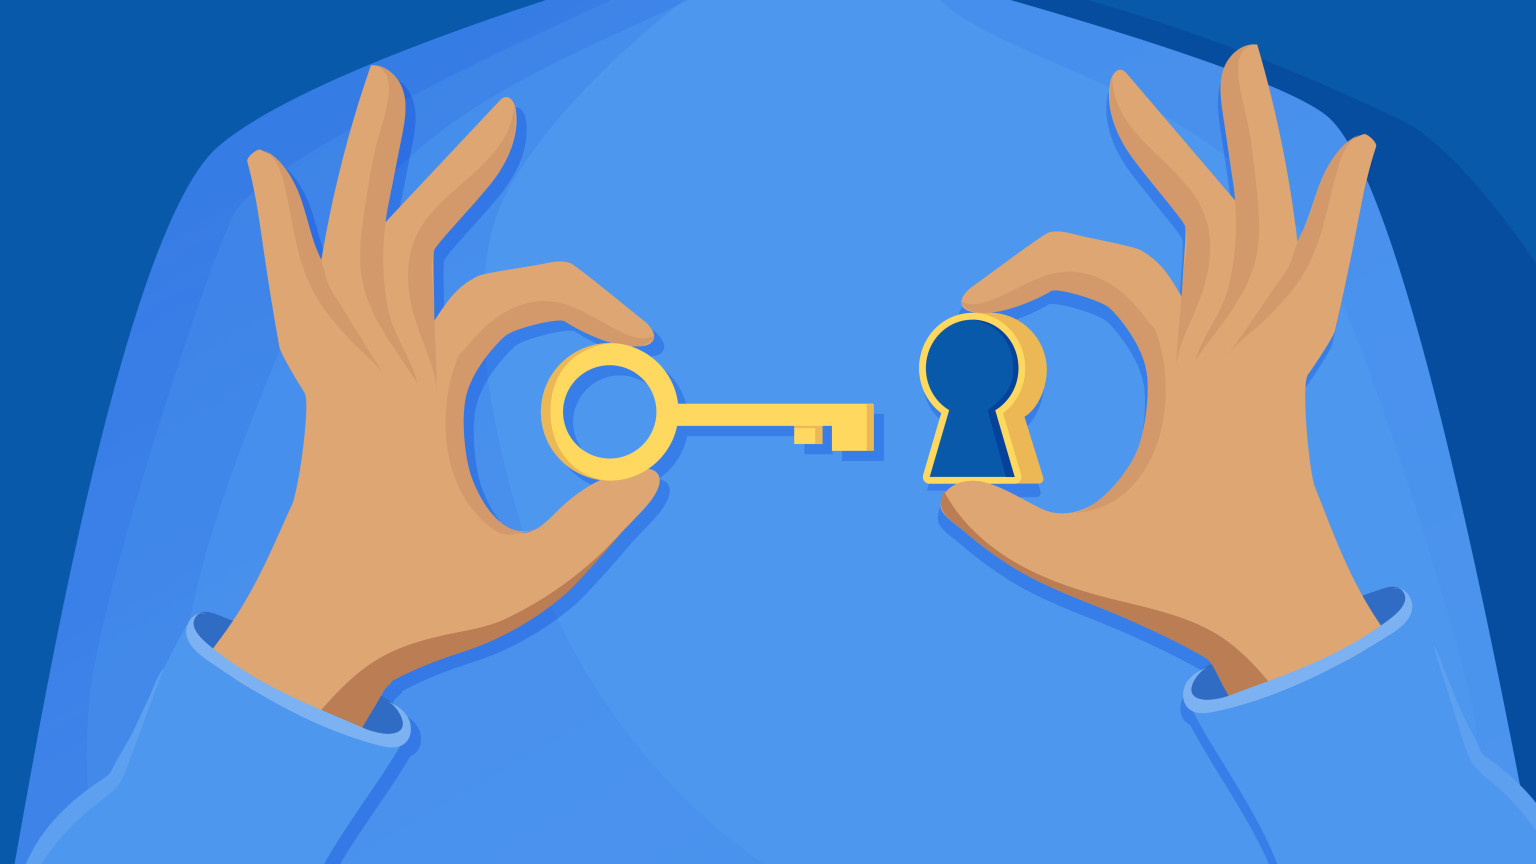 Illustration of a figure holding a key and a keyhole.